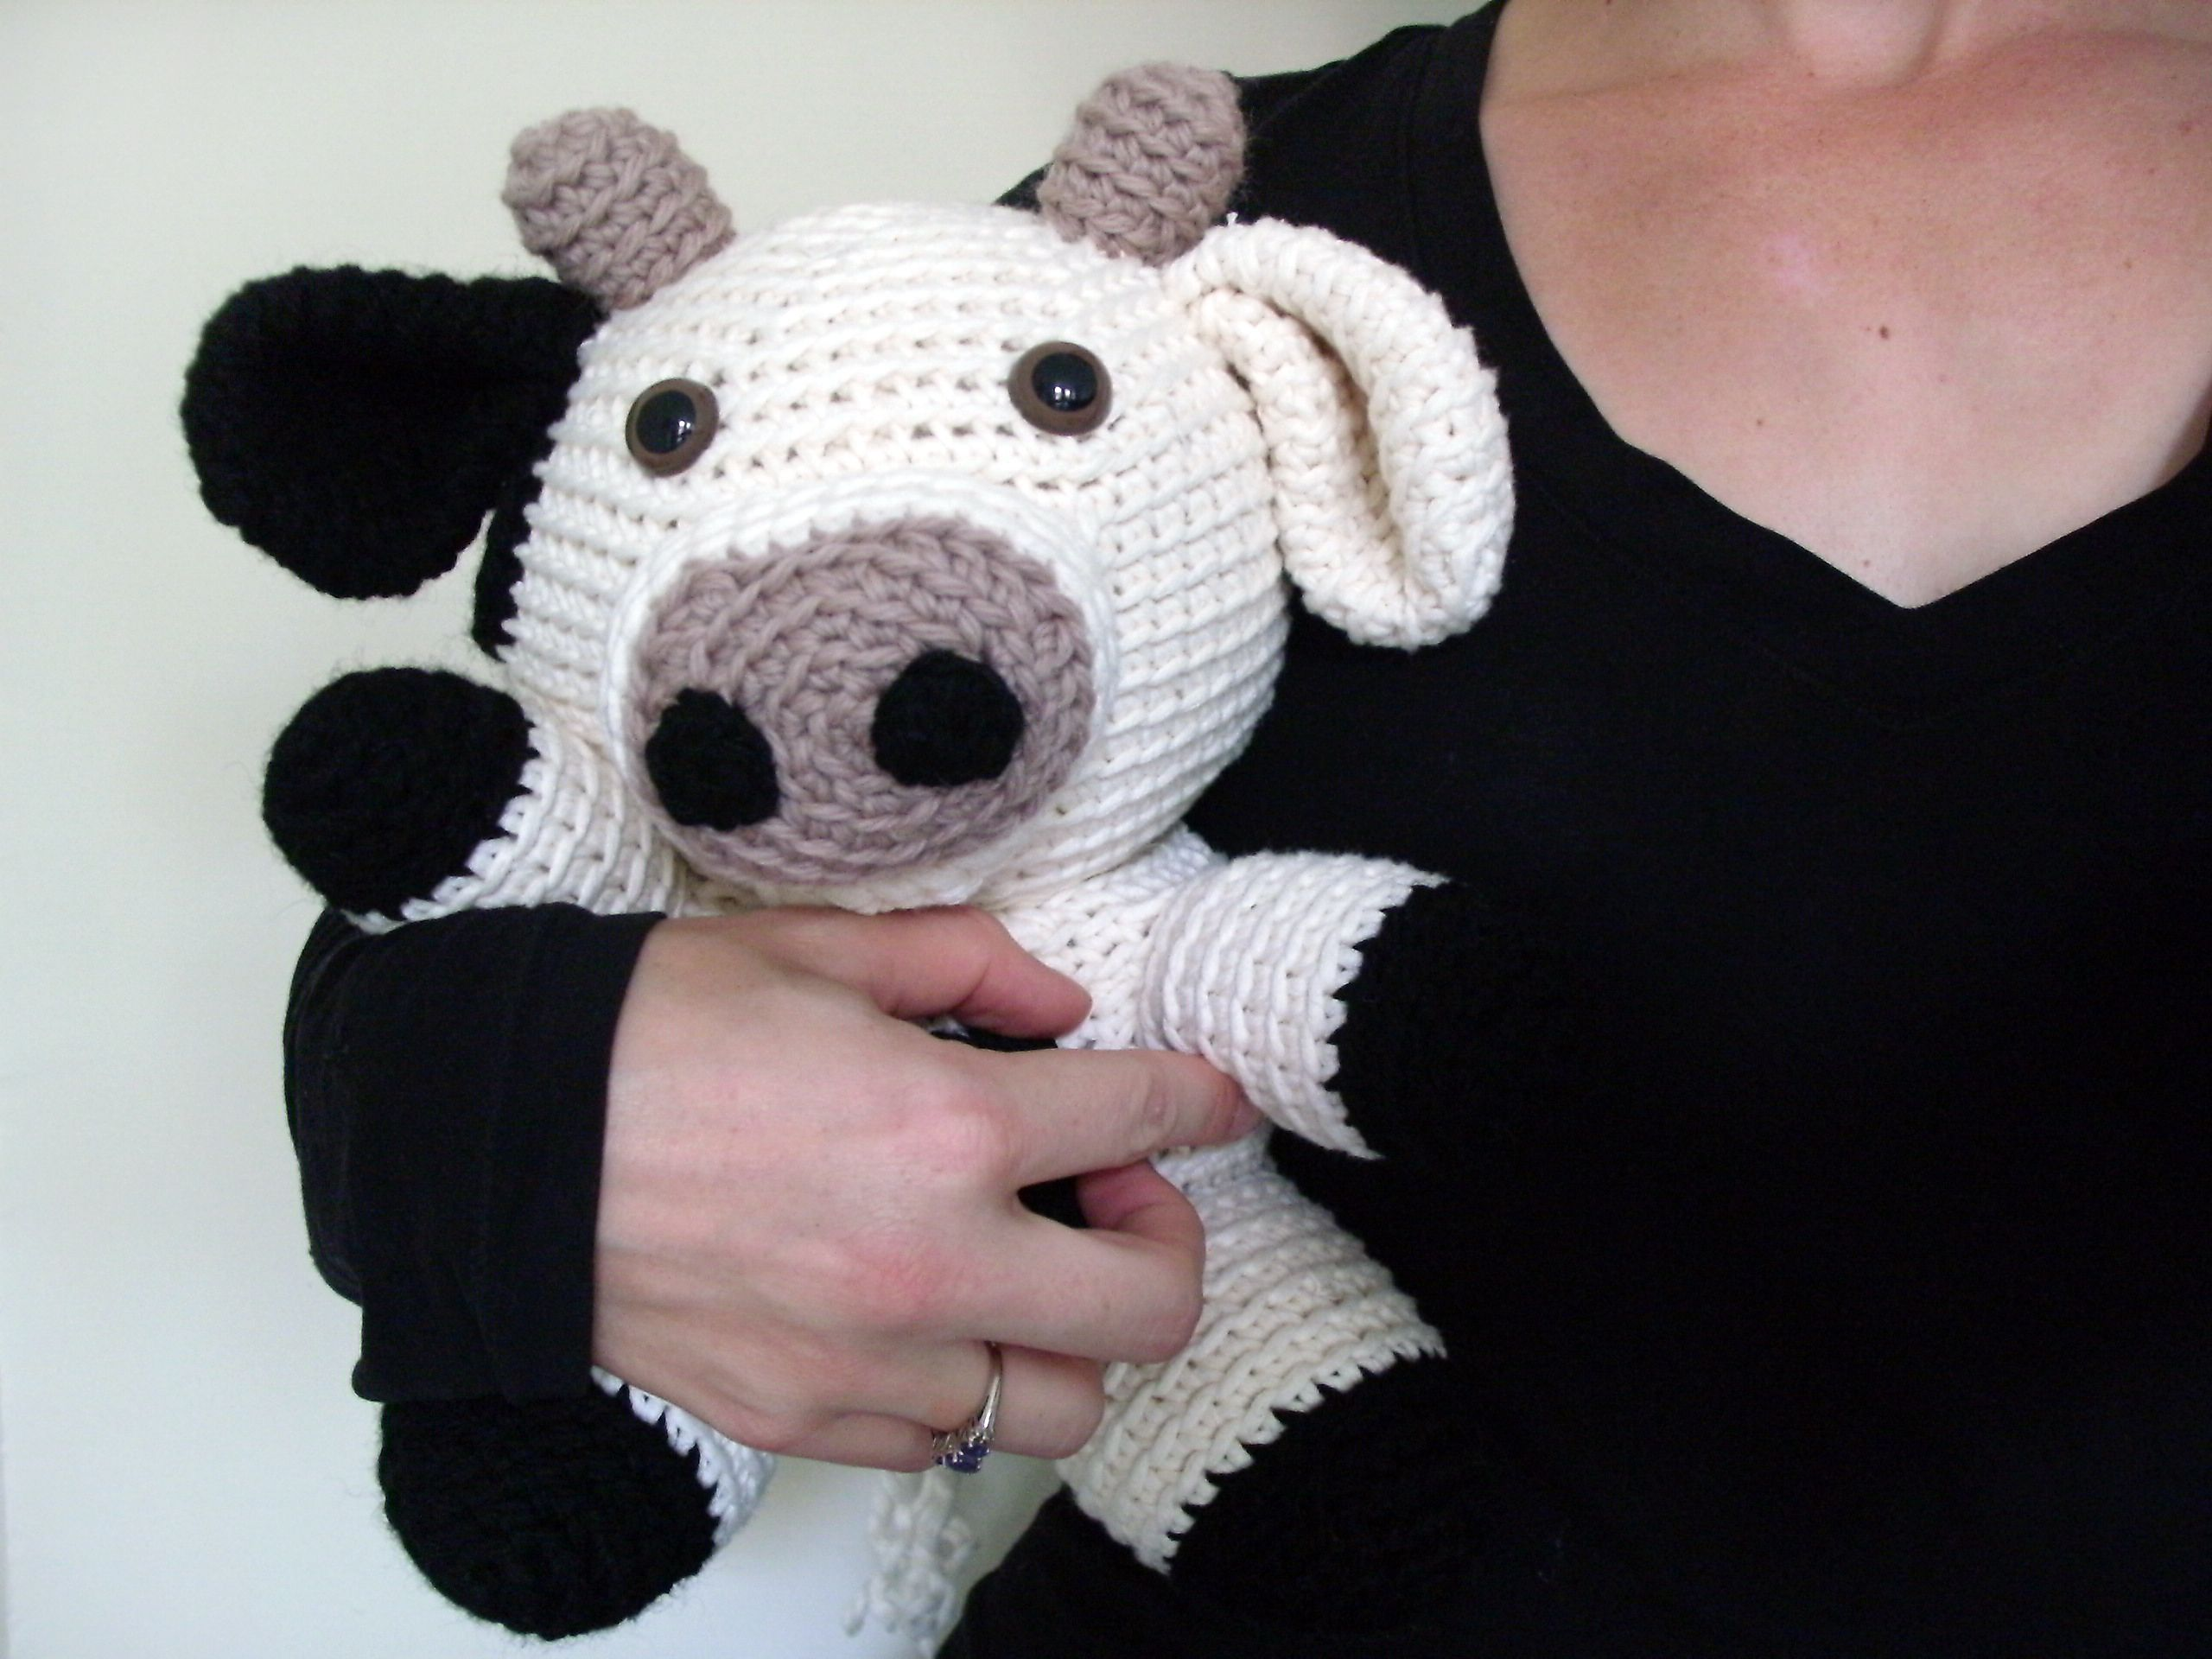 Crochet Patterns For Amigurumi Animals : Amigurumi jackie the cow pattern by stacey trock crochet animal